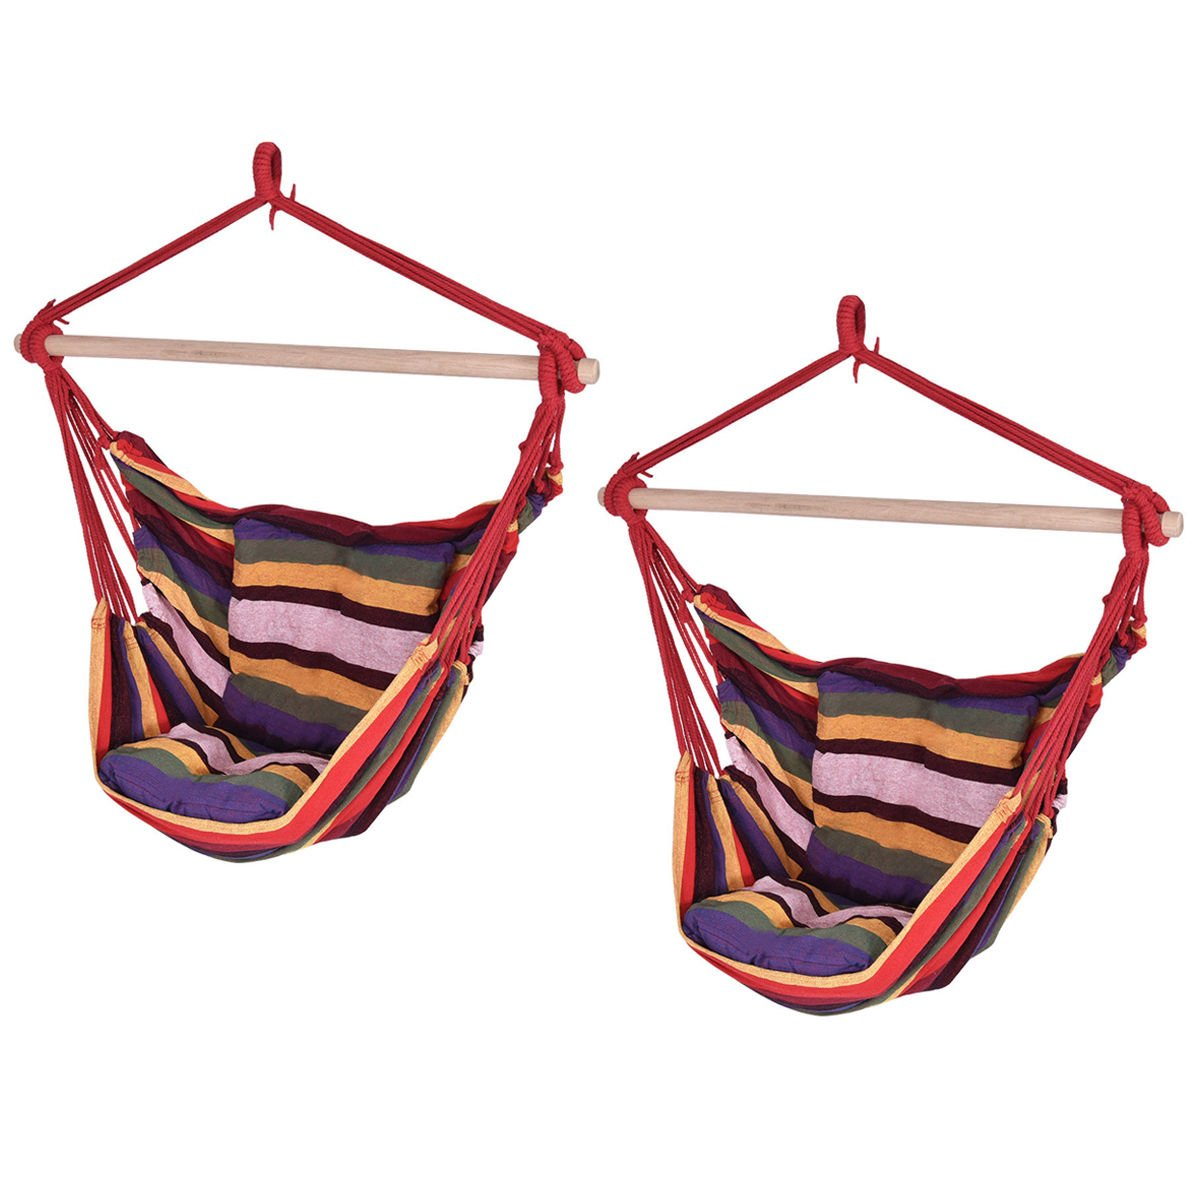 Red Deluxe Hammock Rope Chair Patio Porch Yard Tree Hanging Air Swing Patio Set of 2